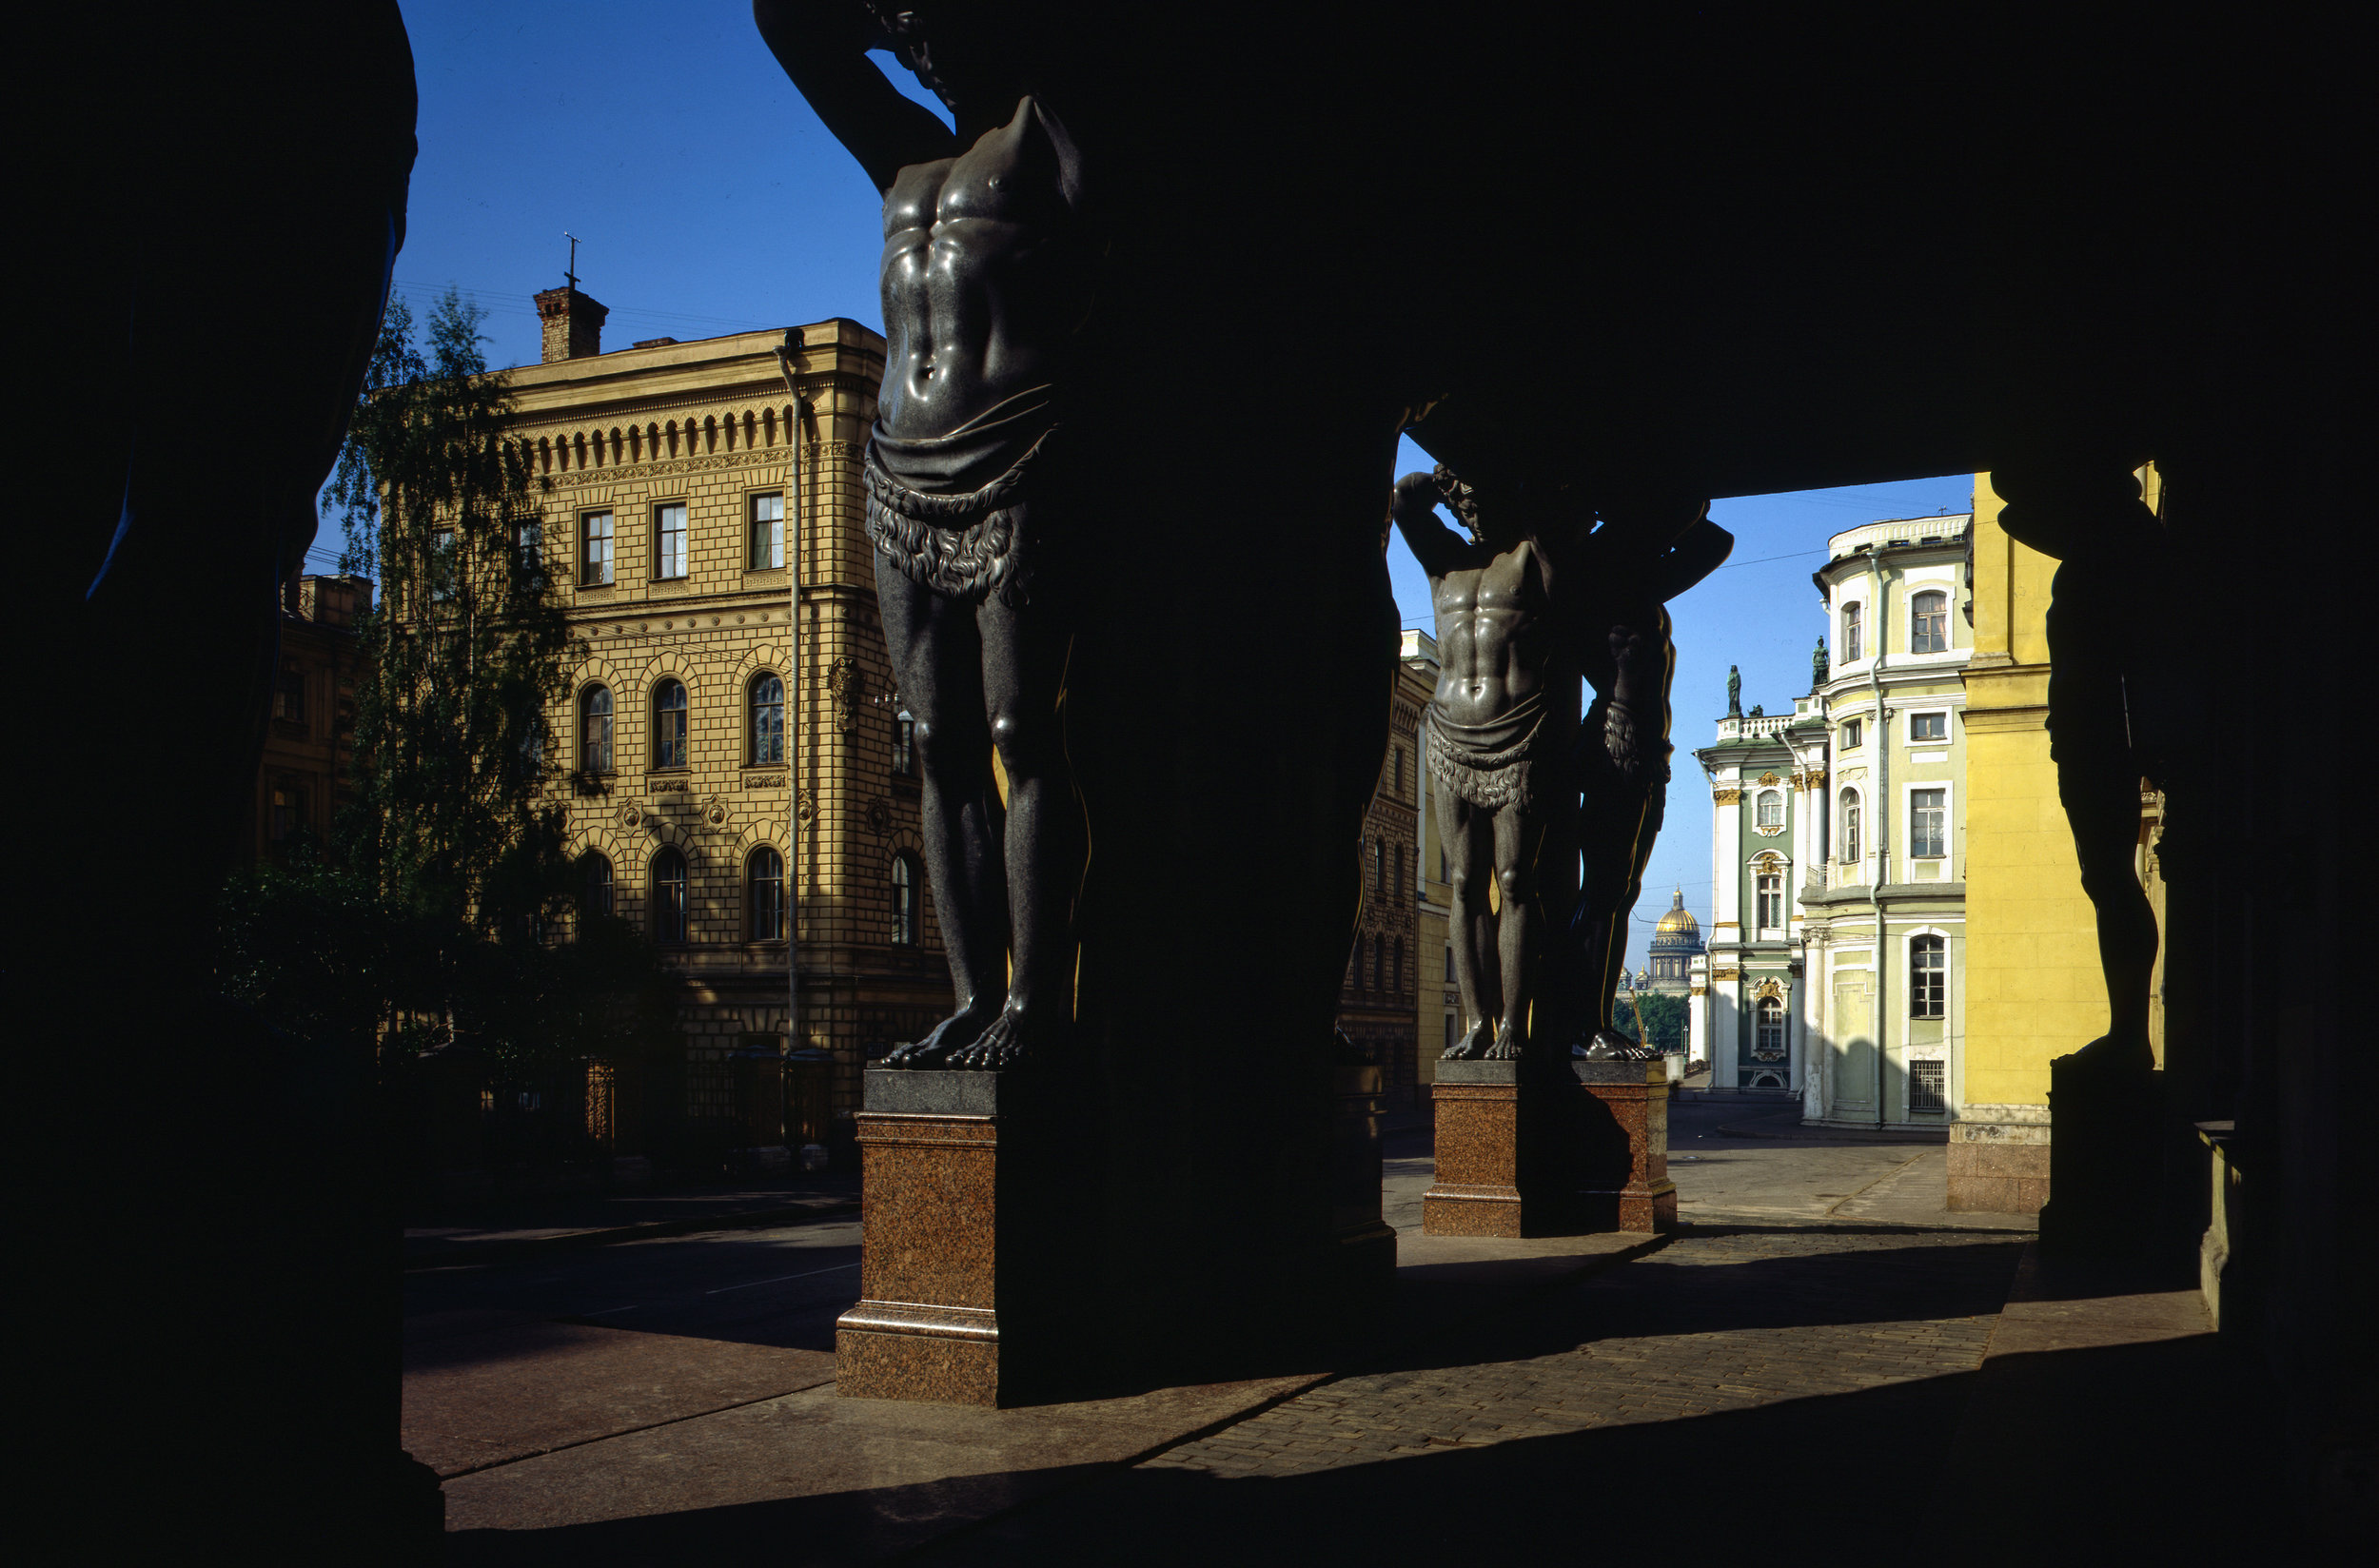 Statues - St. Petersburg, Russia